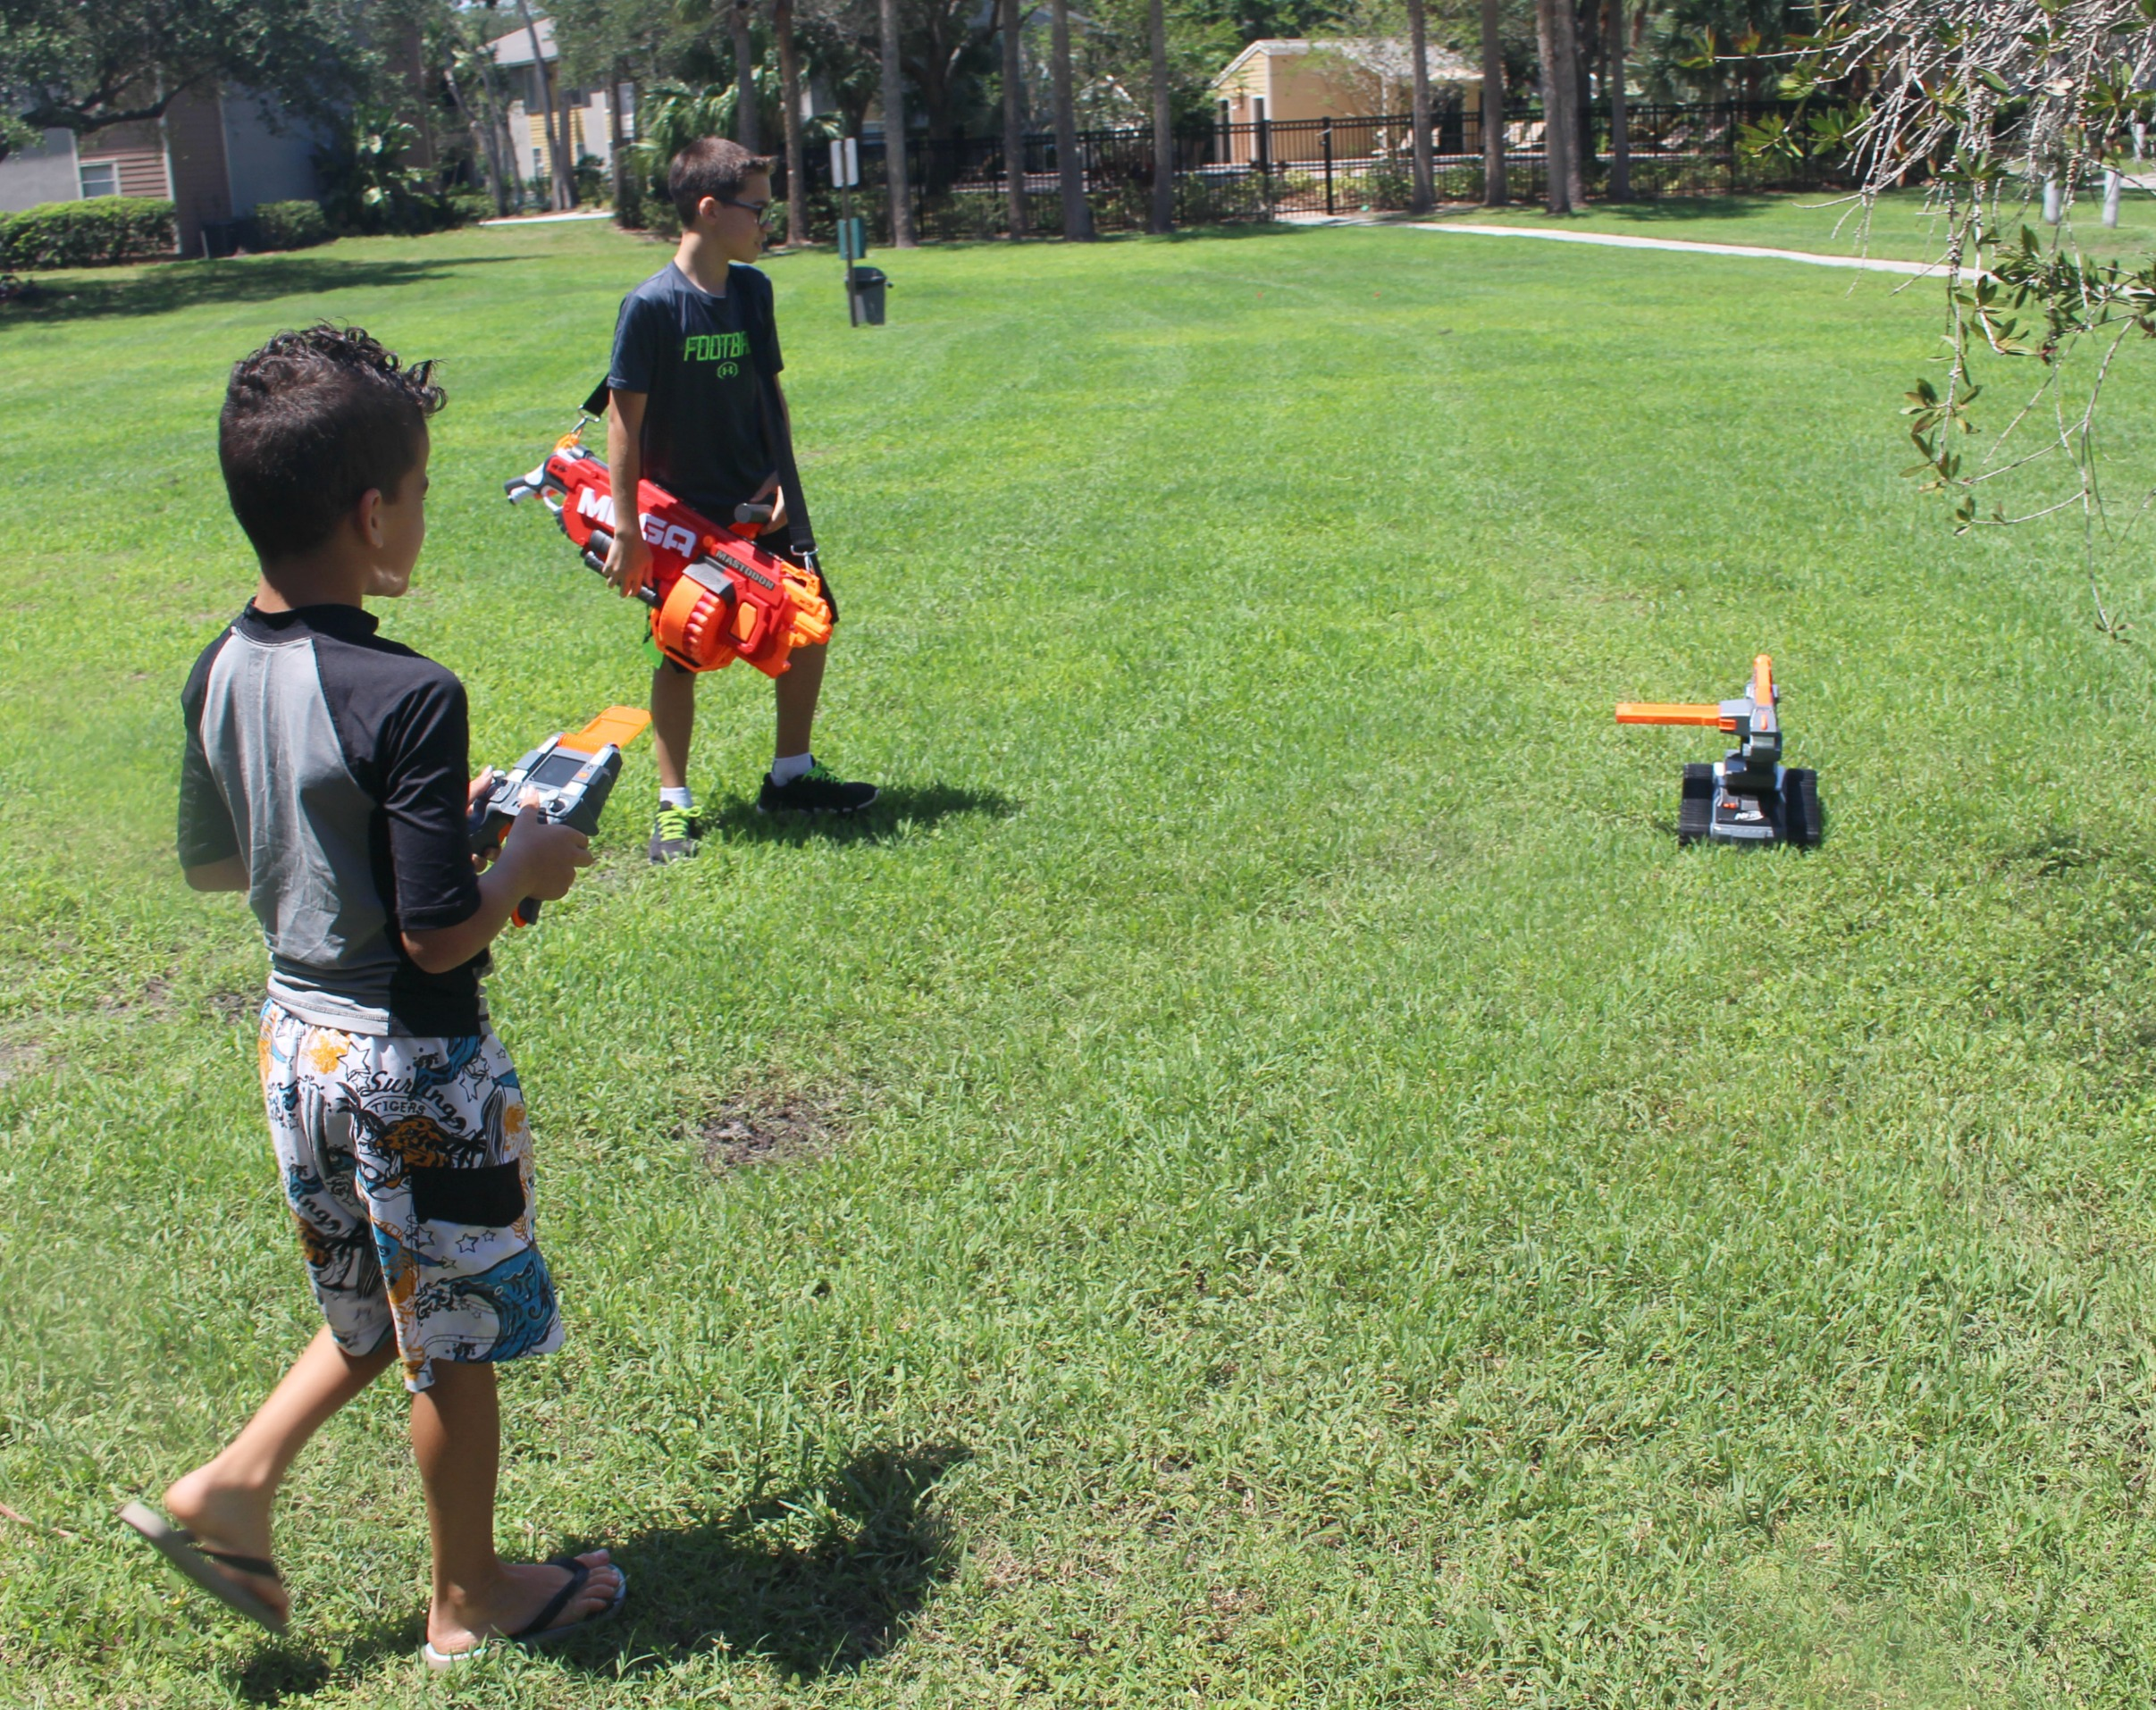 Nerf-Gun-Fight-Mega-Review-Giveaway-kids